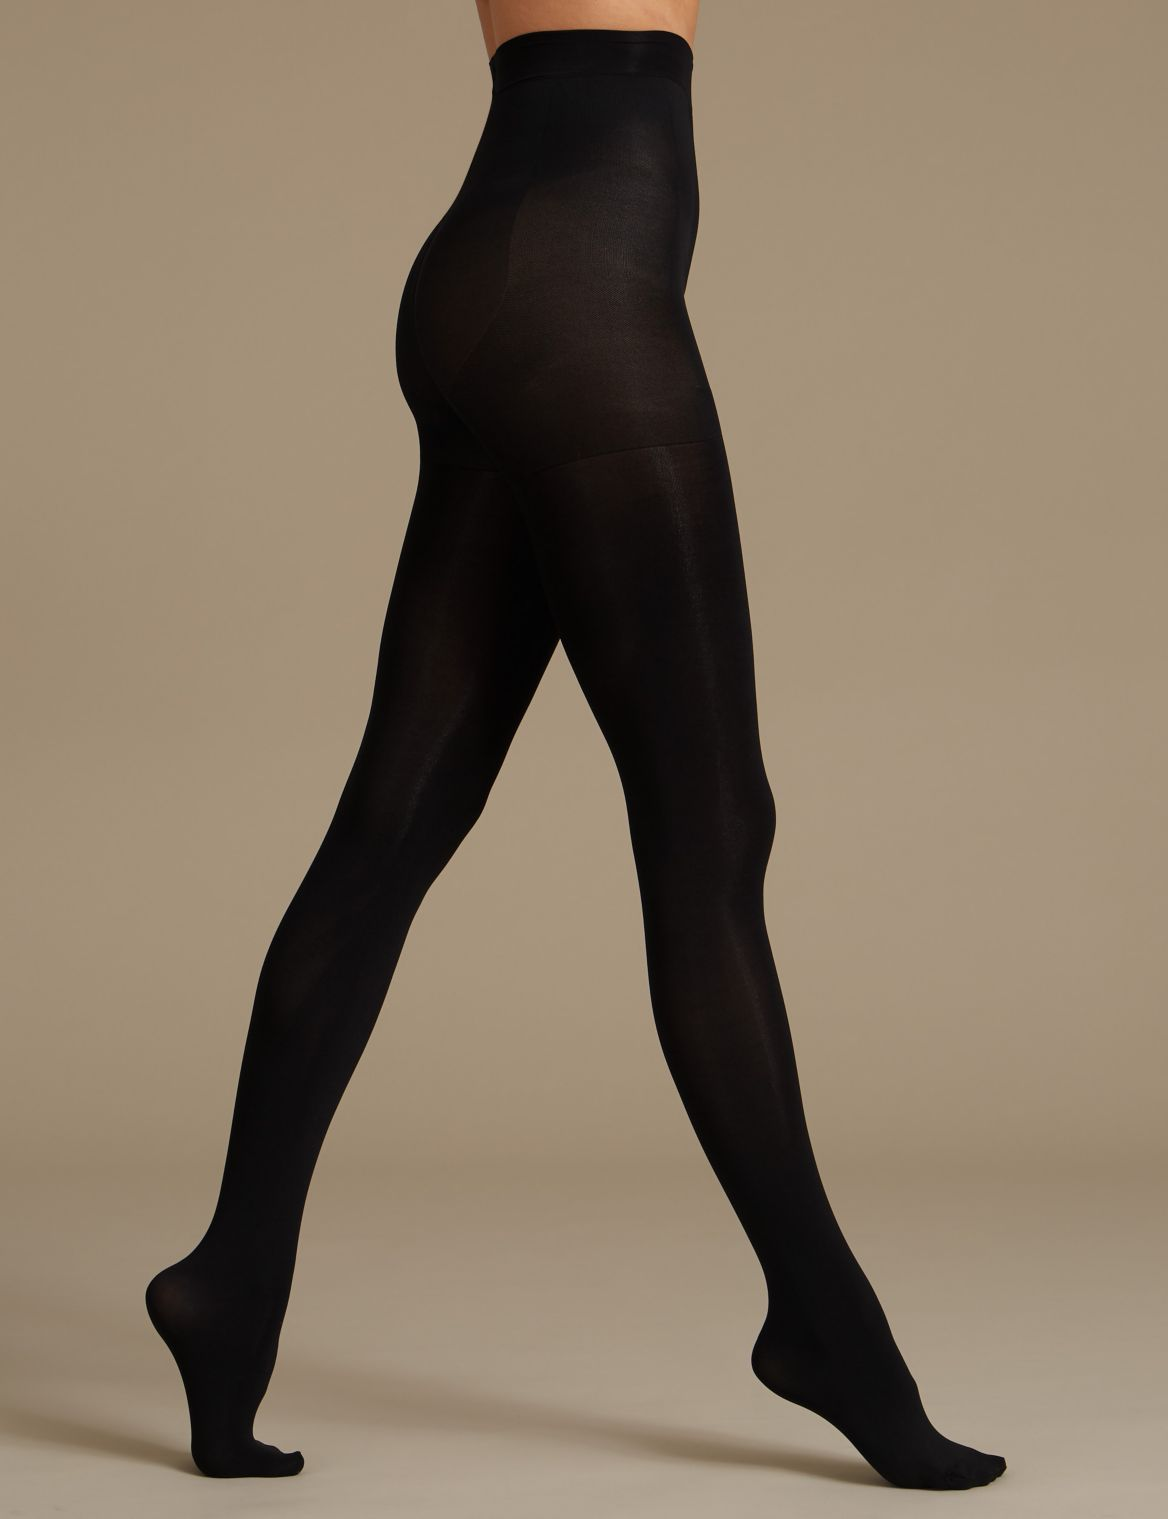 100 Denier Magicwear™ Cellulite Reducing Tights black